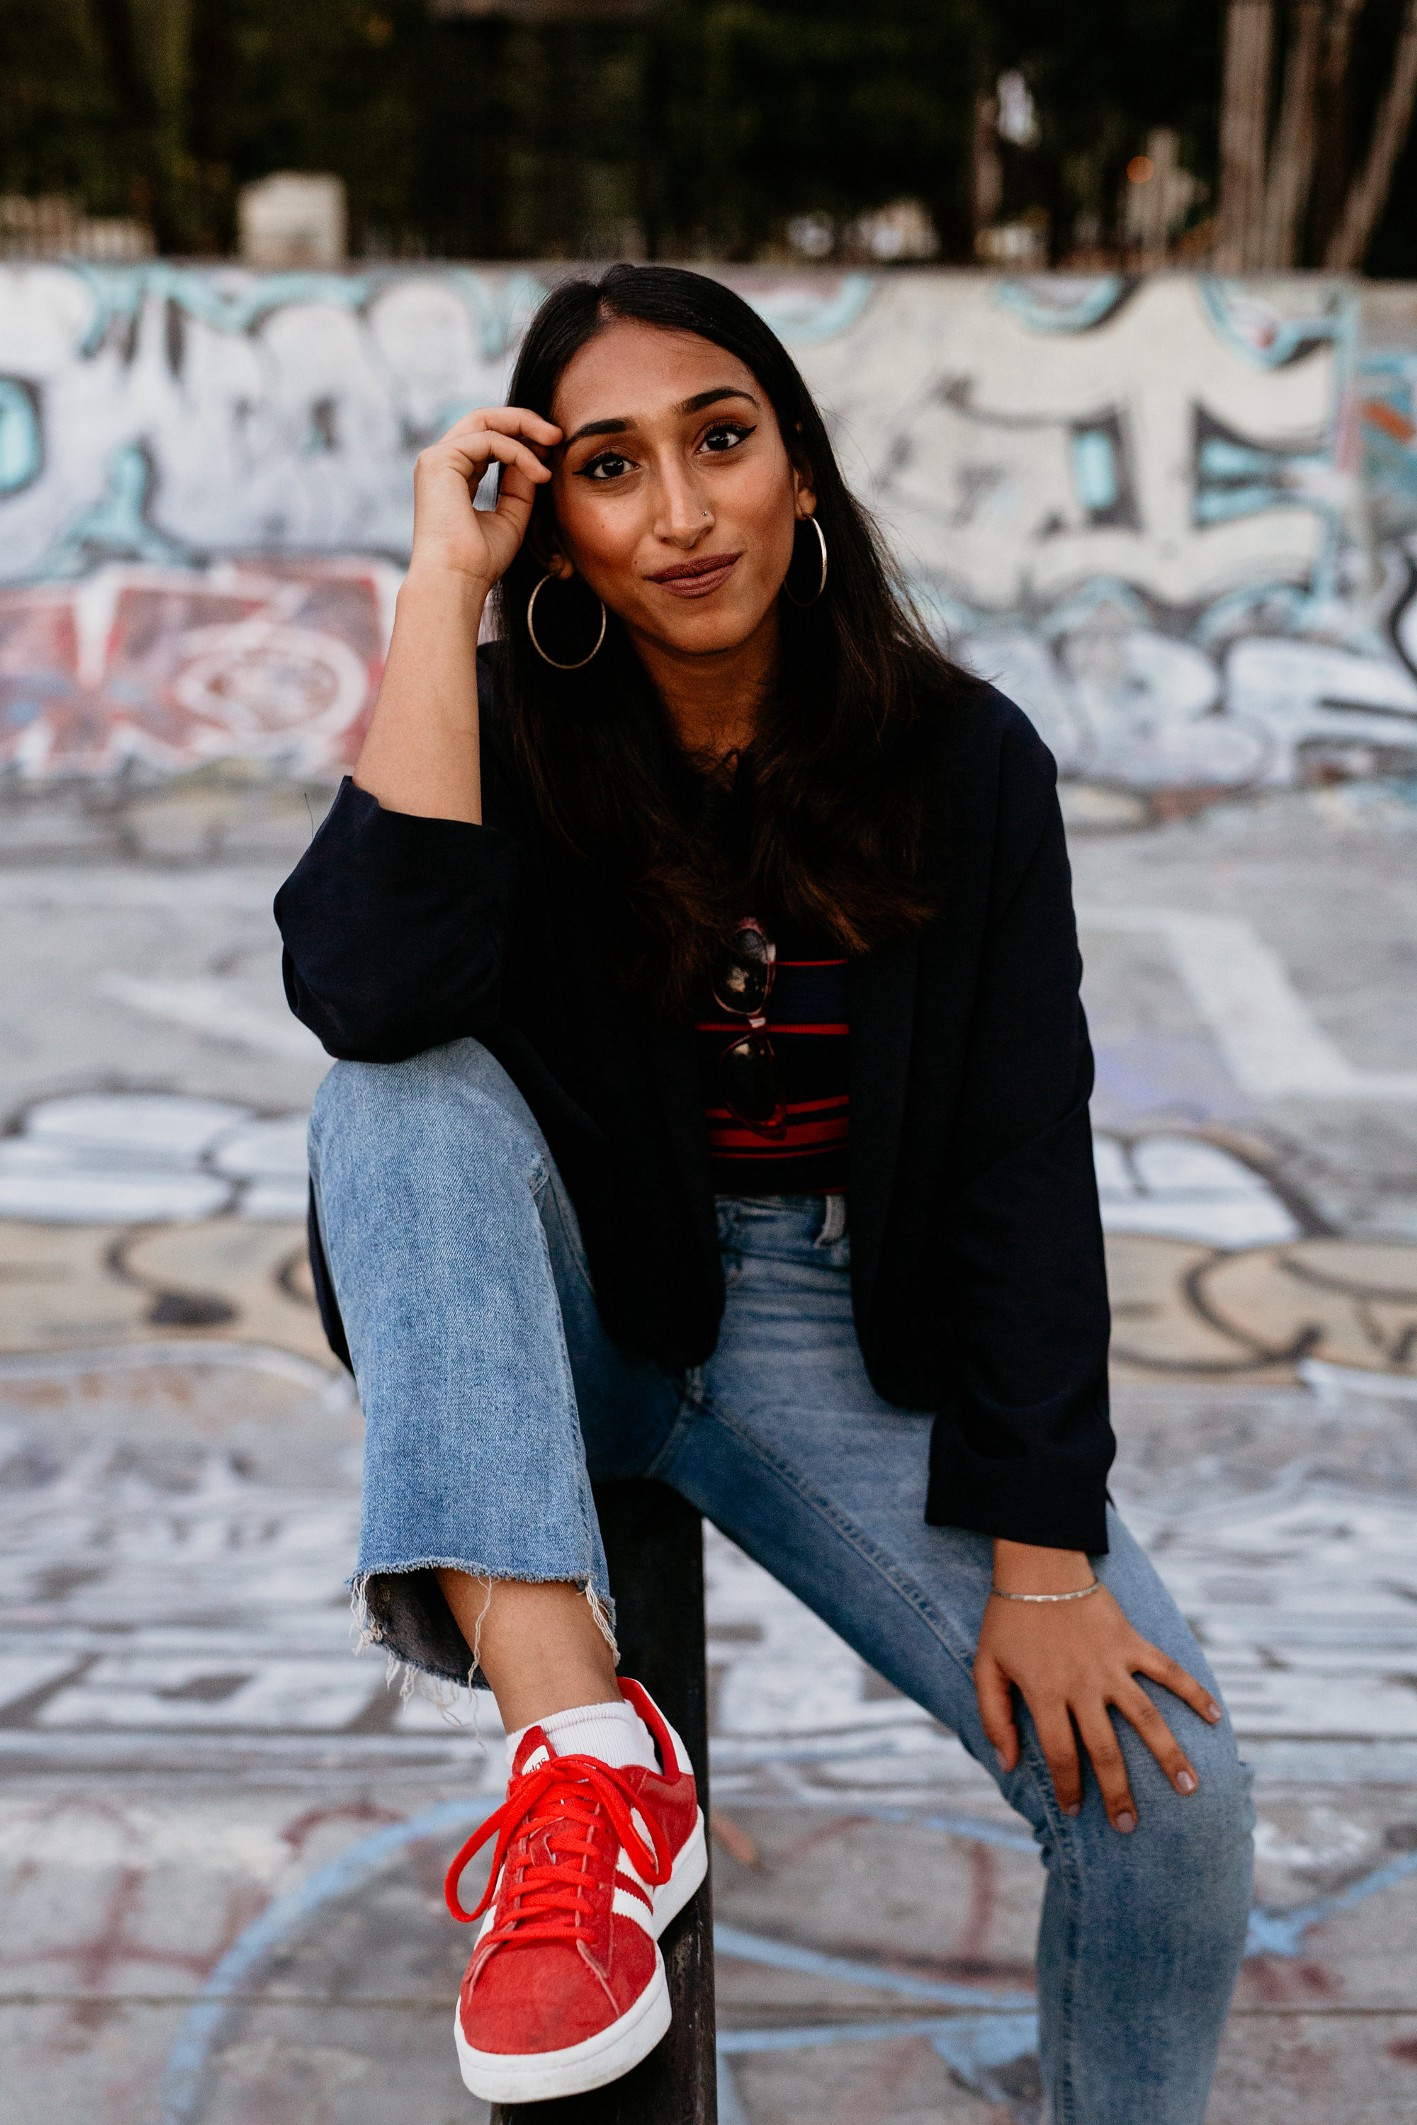 Mitali Gupta | Street Fashion & Culture